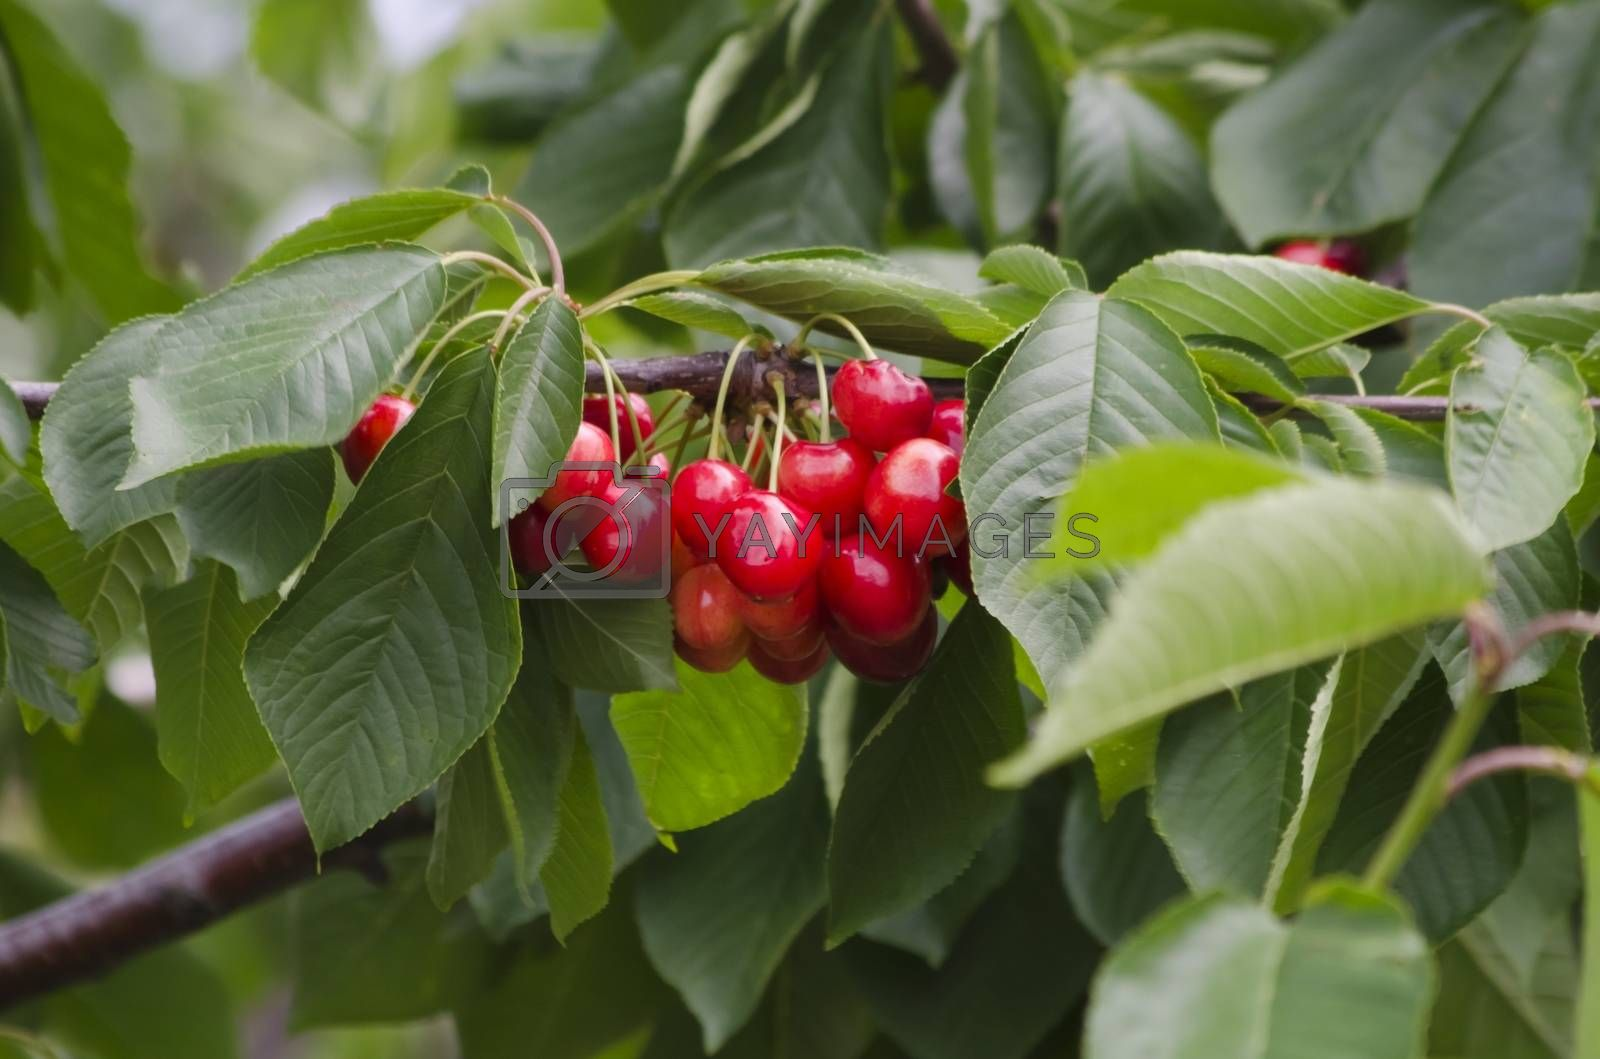 Photo of the Red Cherry Over Green Leaves